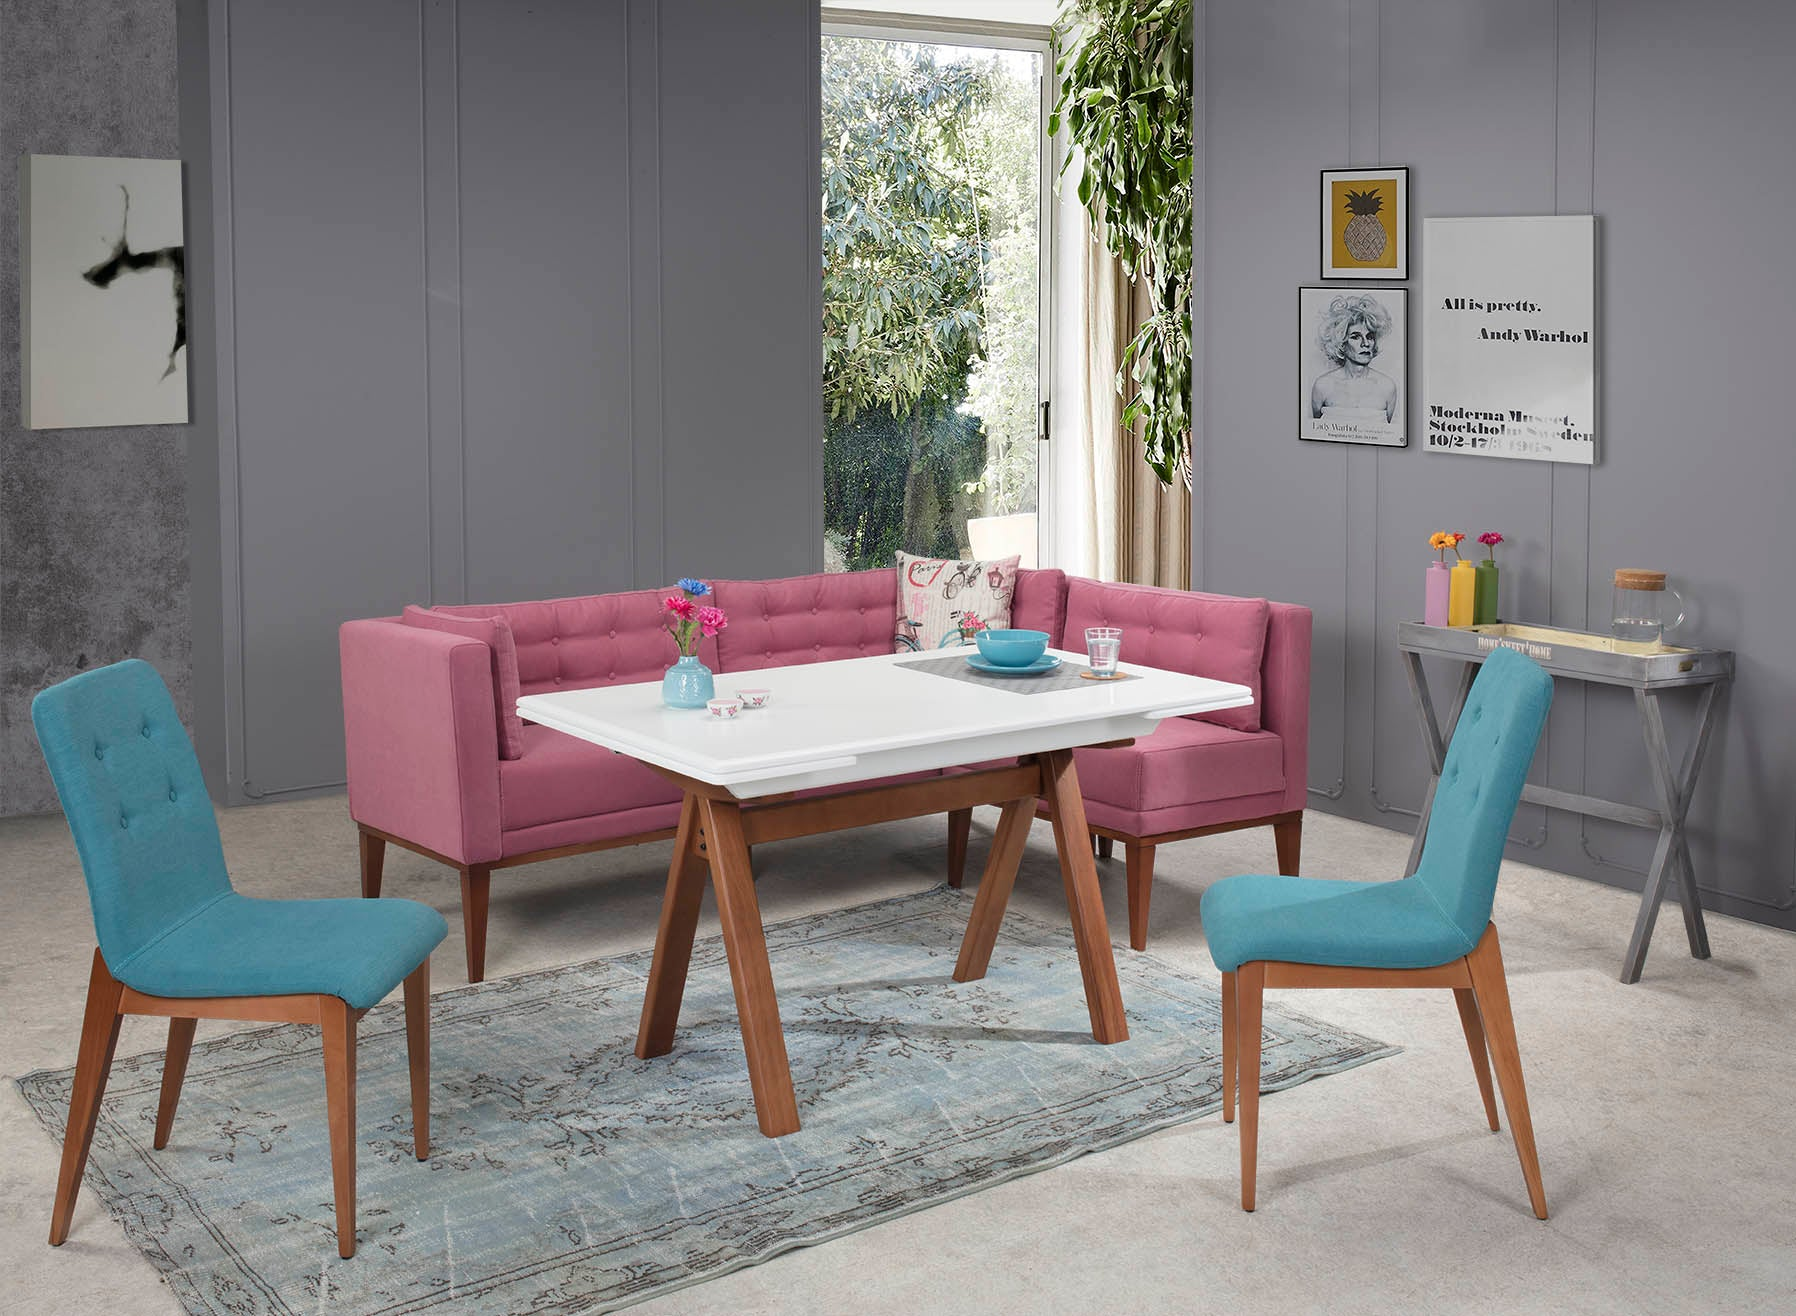 RİO PINK-BLUE Dinner Table